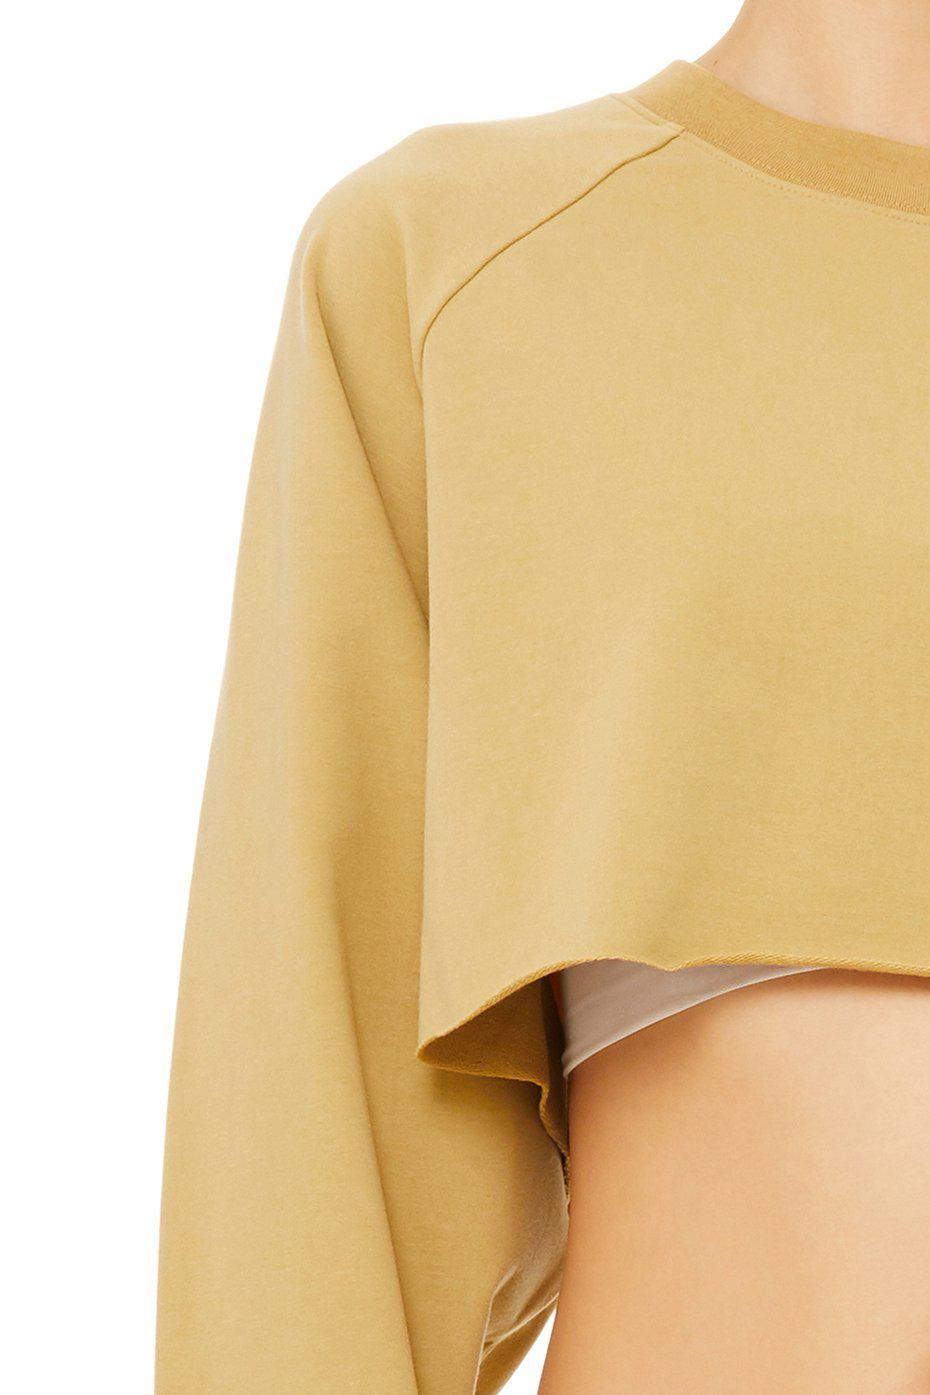 Double Take Pullover - Honey 5